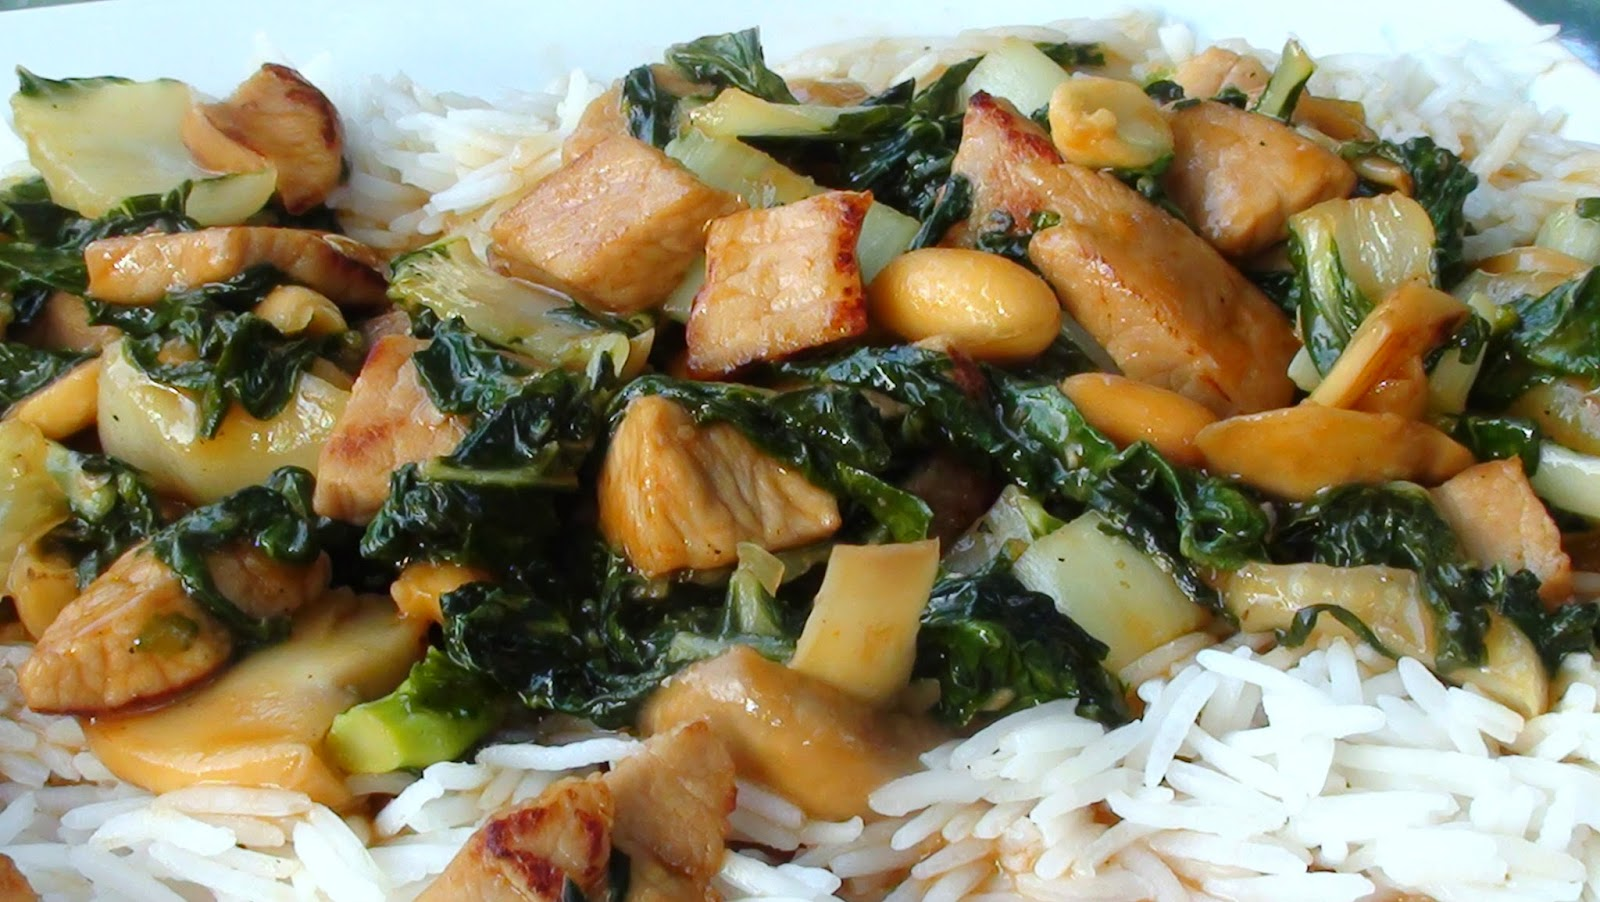 Pork Stir Fry with Baby Bok Choy and Peanuts